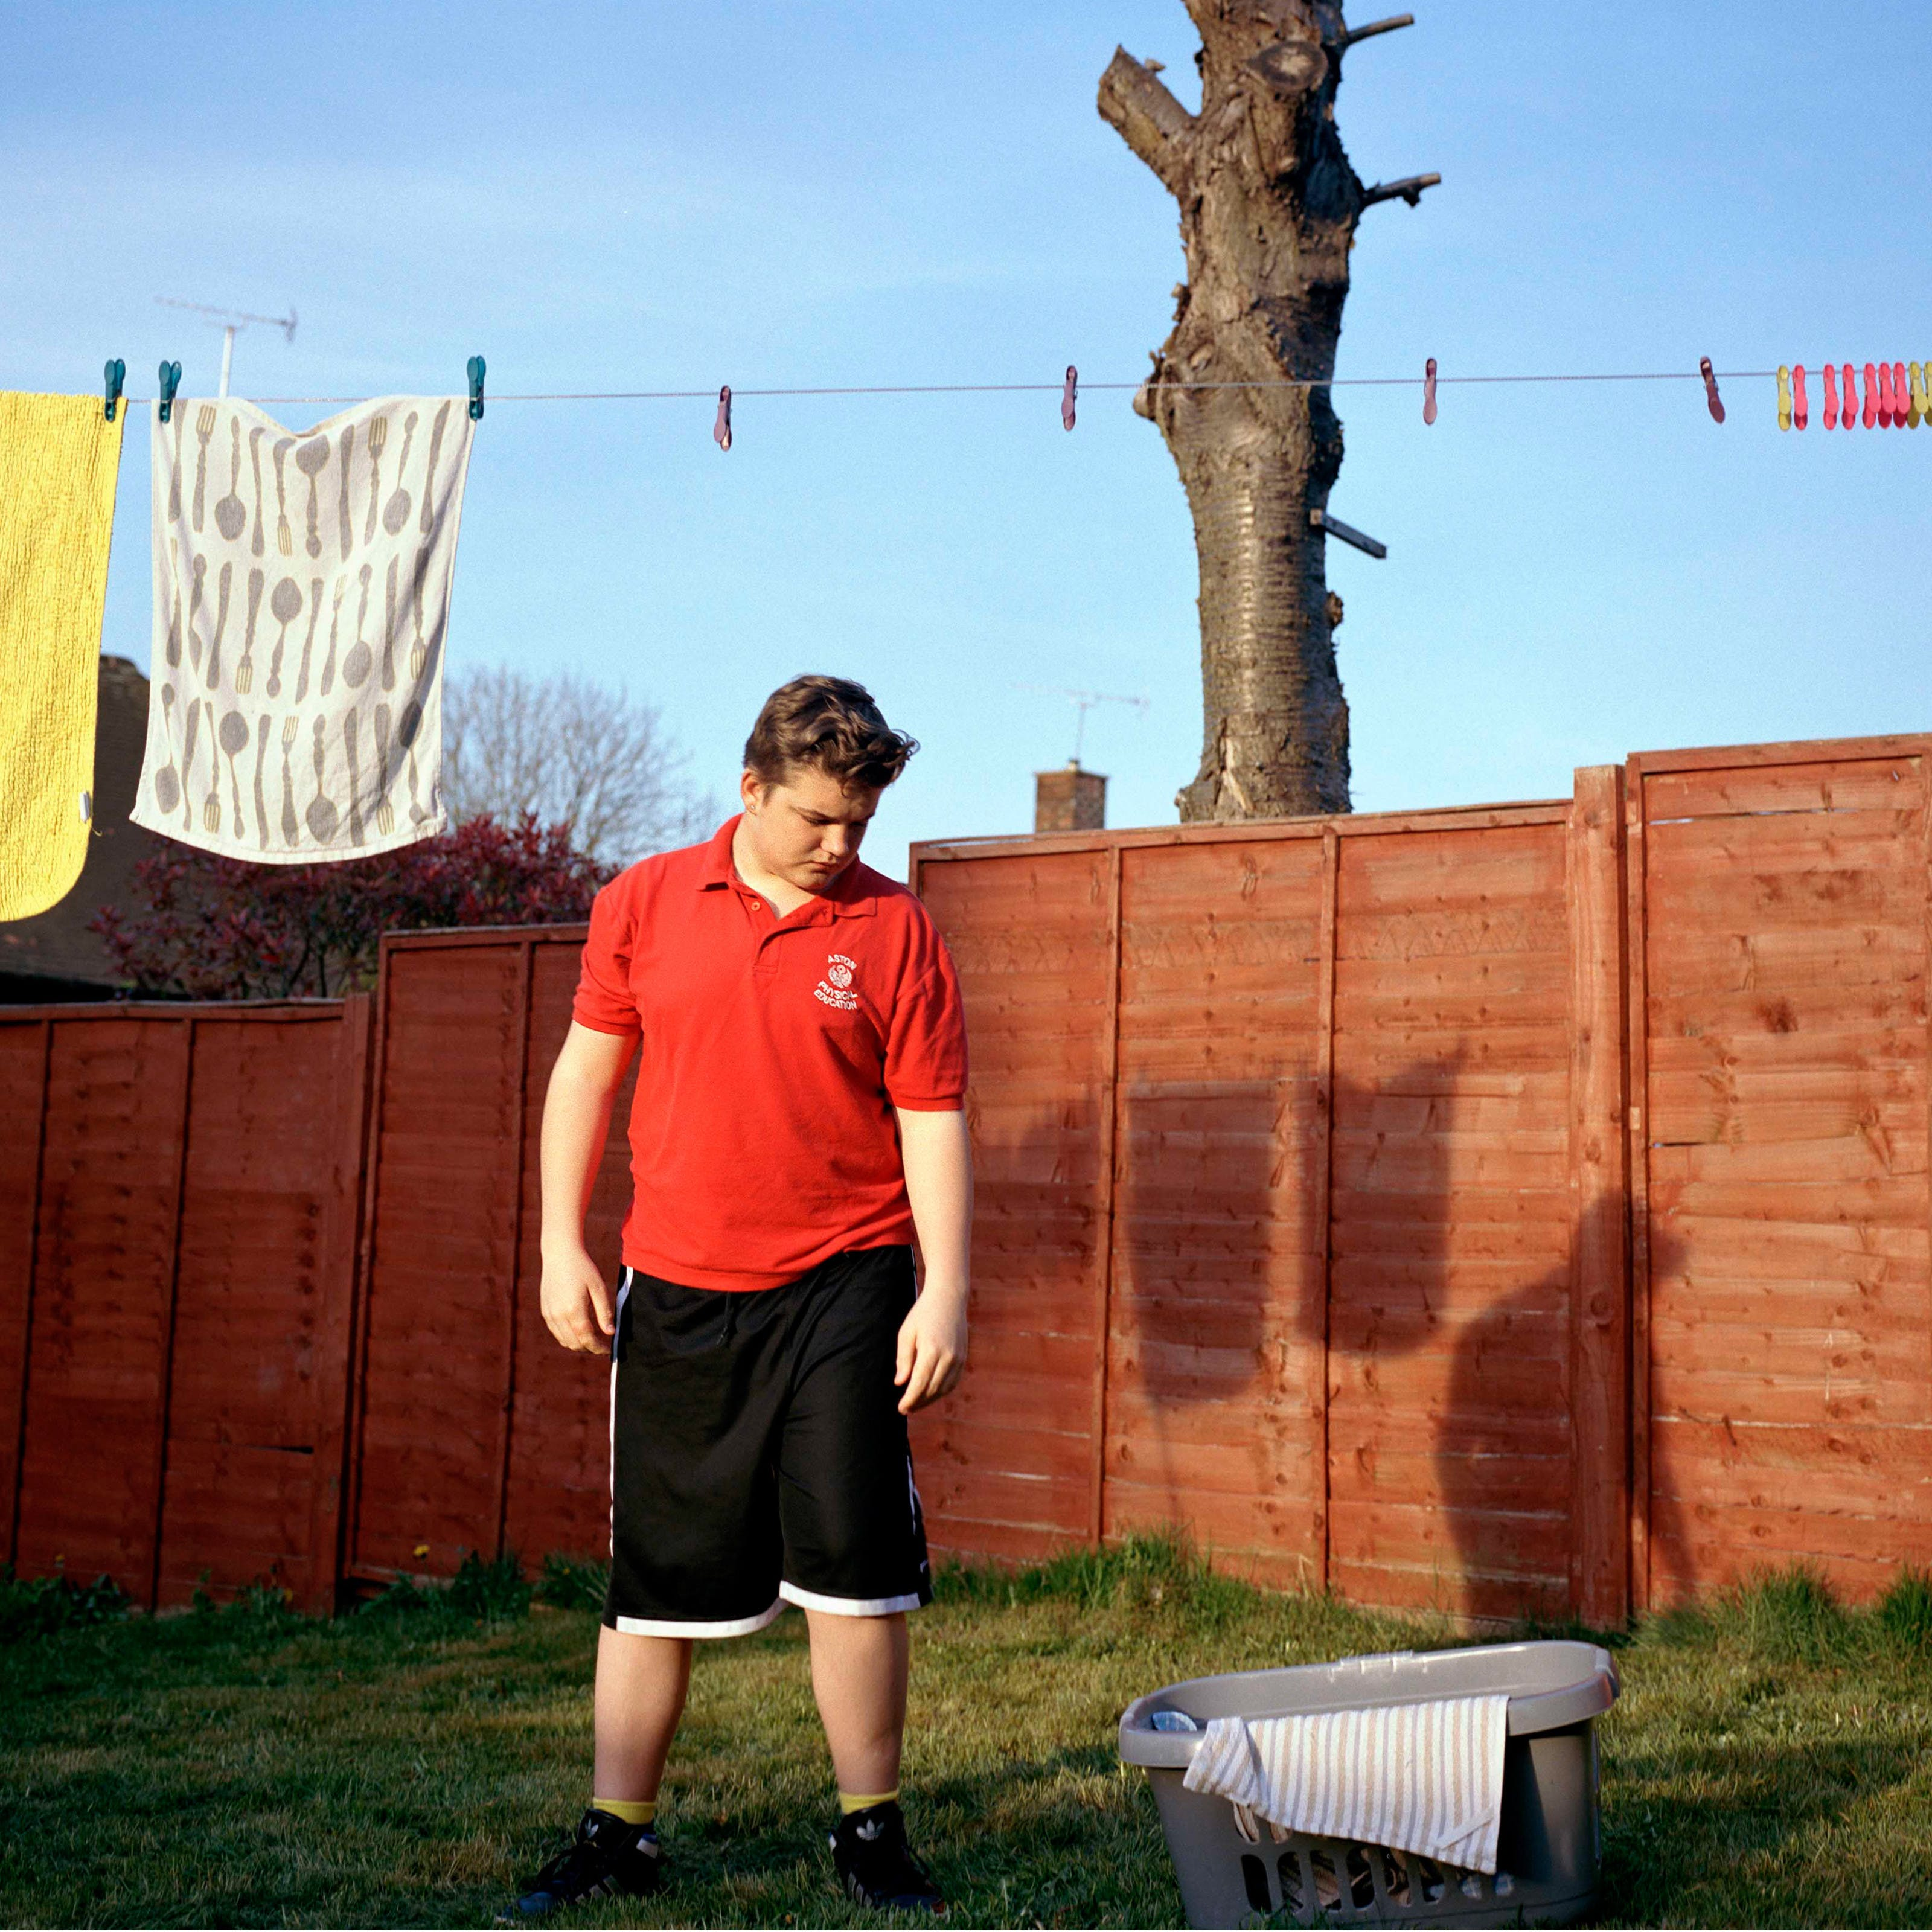 Photograph of a teenage boy wearing a red t-shirt and black shorts, standing in a garden. Above him is a washing line with pegs and towels.